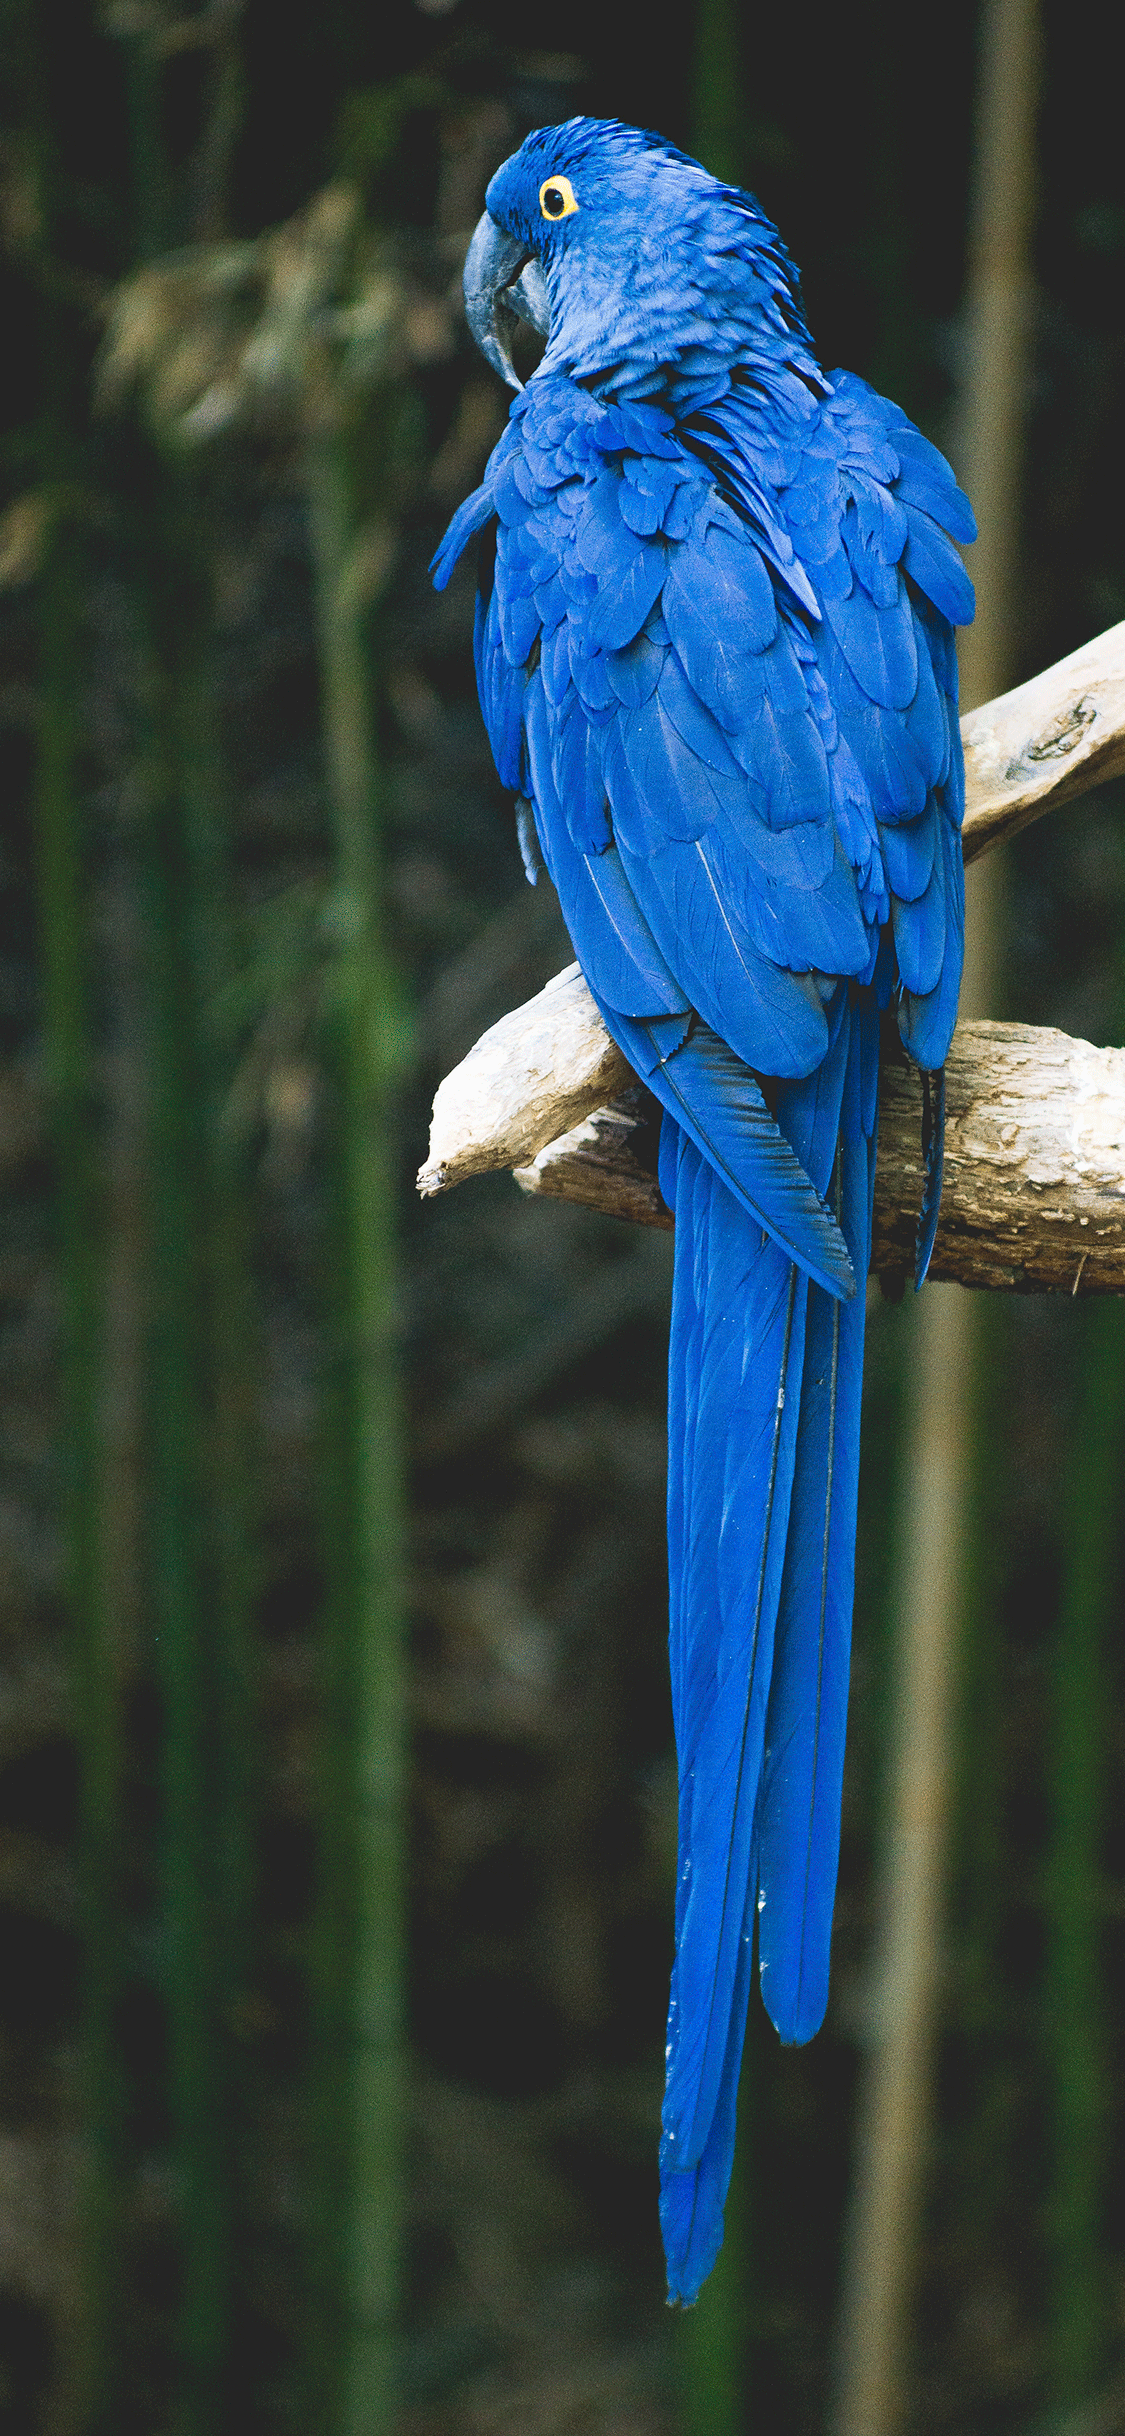 iPhone wallpaper parrot blue Fonds d'écran iPhone du 17/08/2018